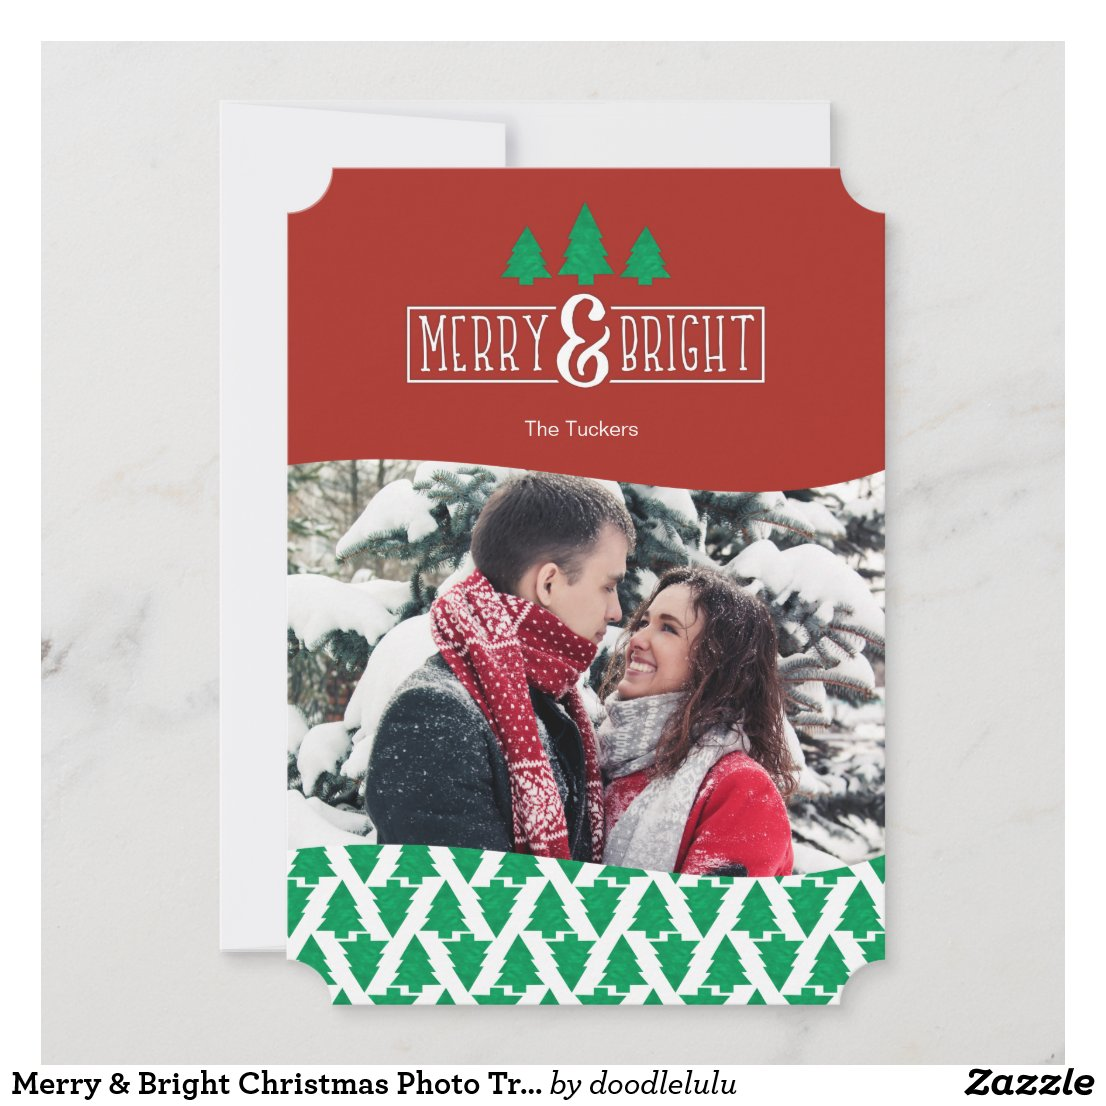 Merry & Bright Christmas Photo Trees Holiday Card